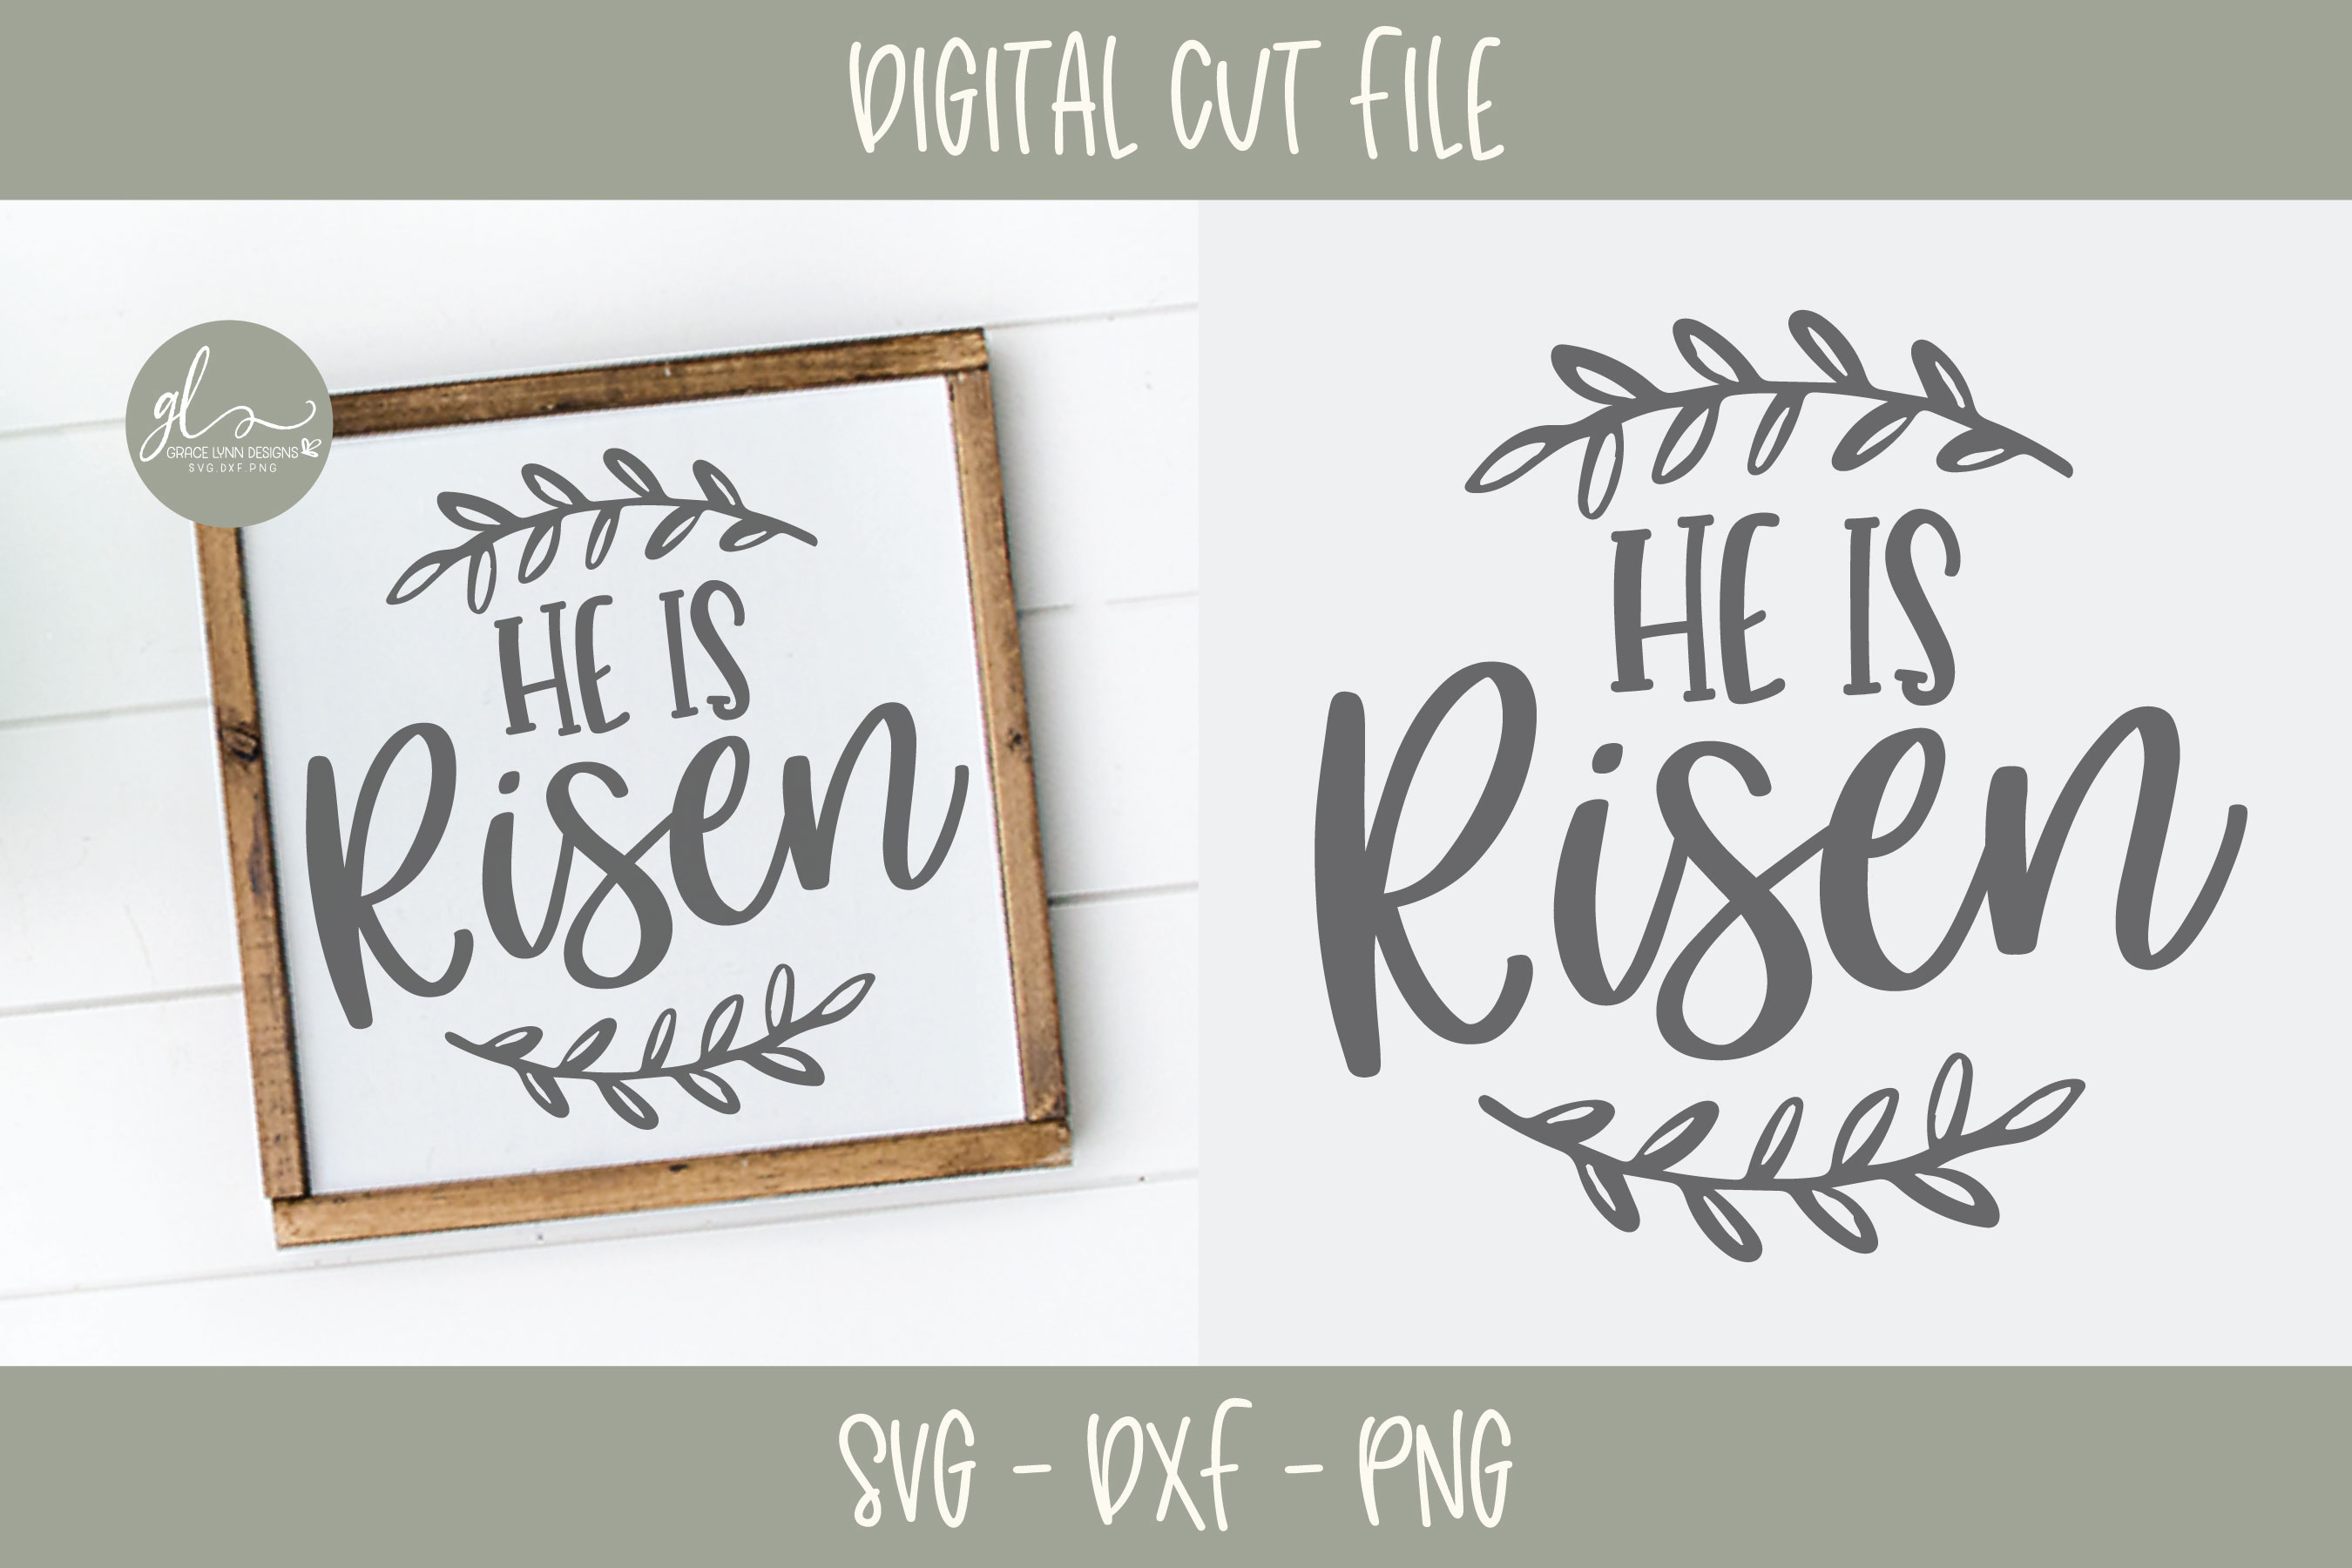 He Is Risen - Easter SVG Cut File example image 2